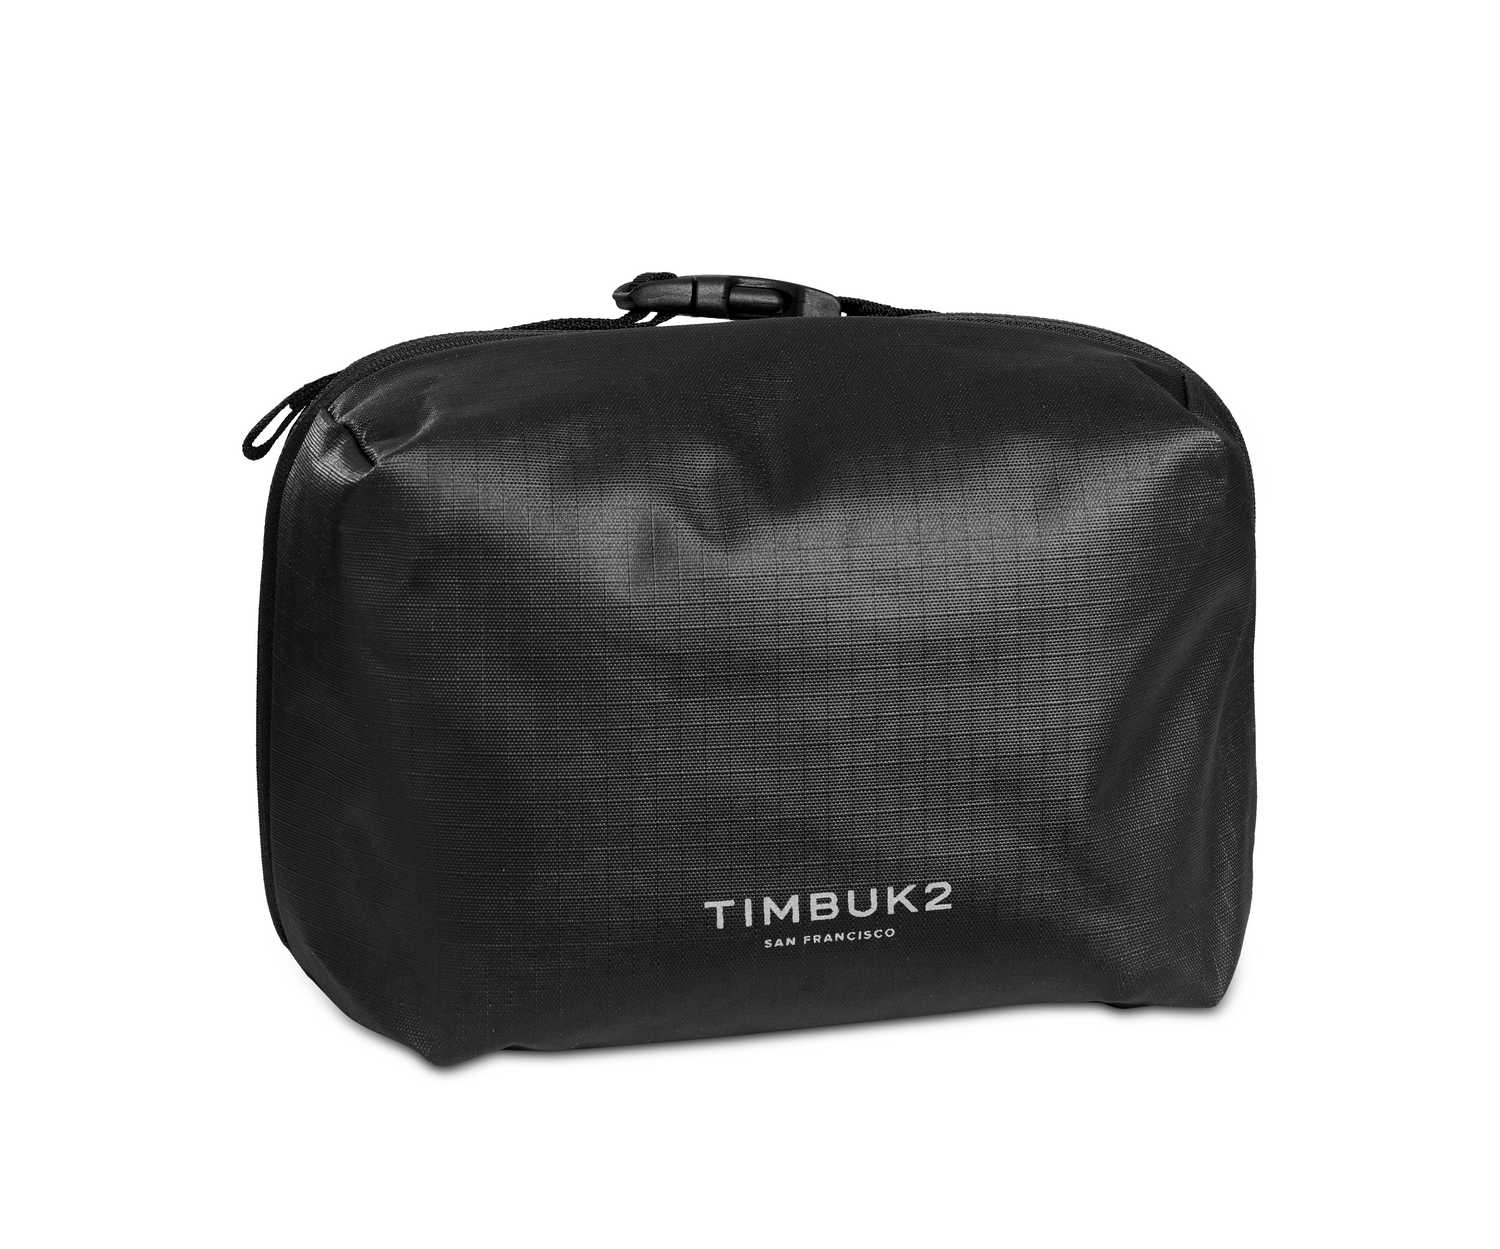 315227a0434 Tommy Hilfiger Toiletry Bag - from  12.94